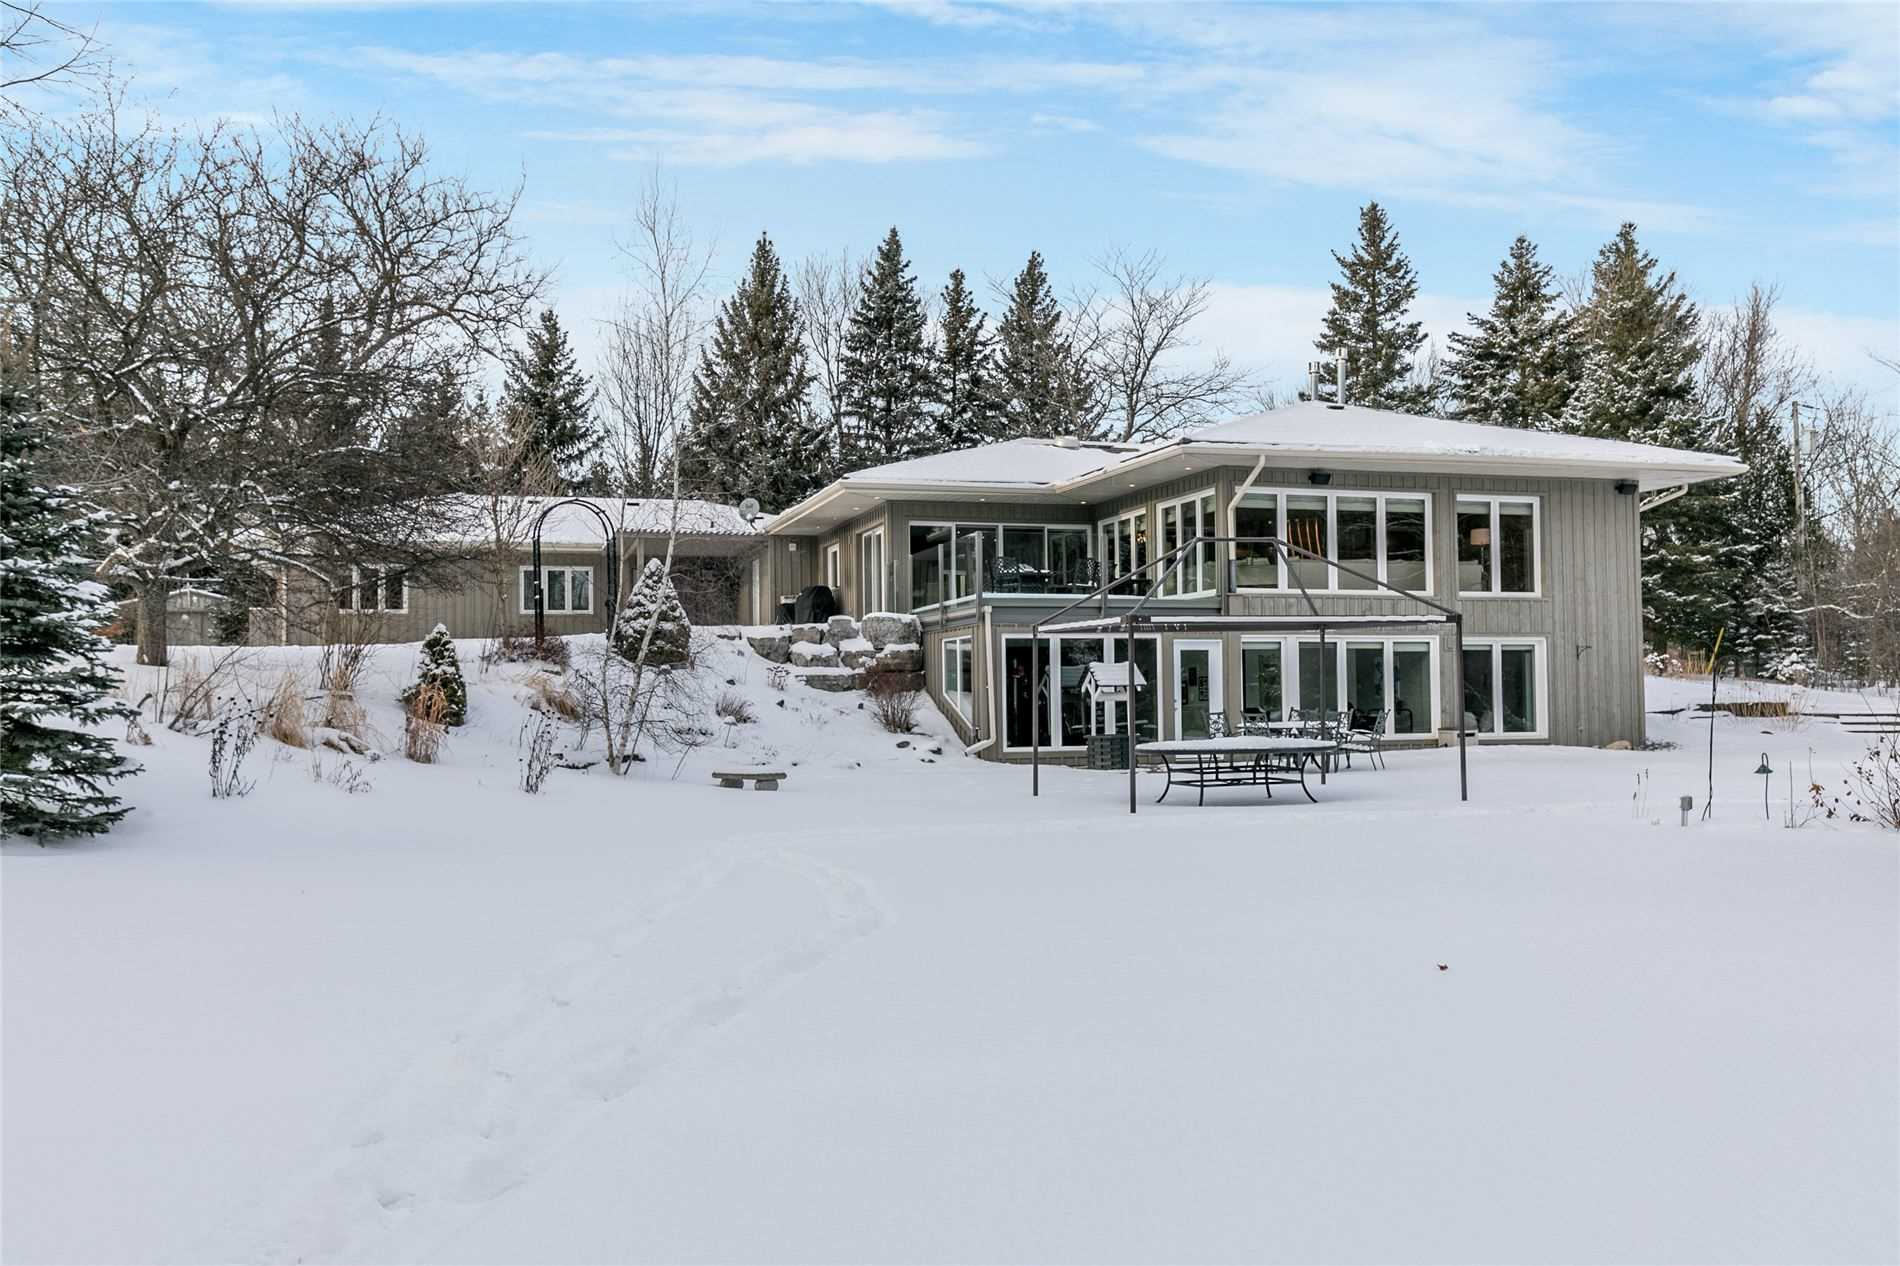 Attn Investors! Rare Opportunity To Own 19.46 Pristine Acres In Caledon. Property Borders Teen Ranch, Orangeville Golf Club, Jehovah Jireh And Highpoint Sdr With The Credit River Running Through The Southend Of The Property. The Main Home Is Stunning! Two Kitchens, Open Concept Design, Walk Out Basement. Separate Full Nanny/Inlaw Apartment With 2 Bedrooms.  Detached 3.5 Car Garage.  Great For Multi Families. Possible Chance For Future Severance.